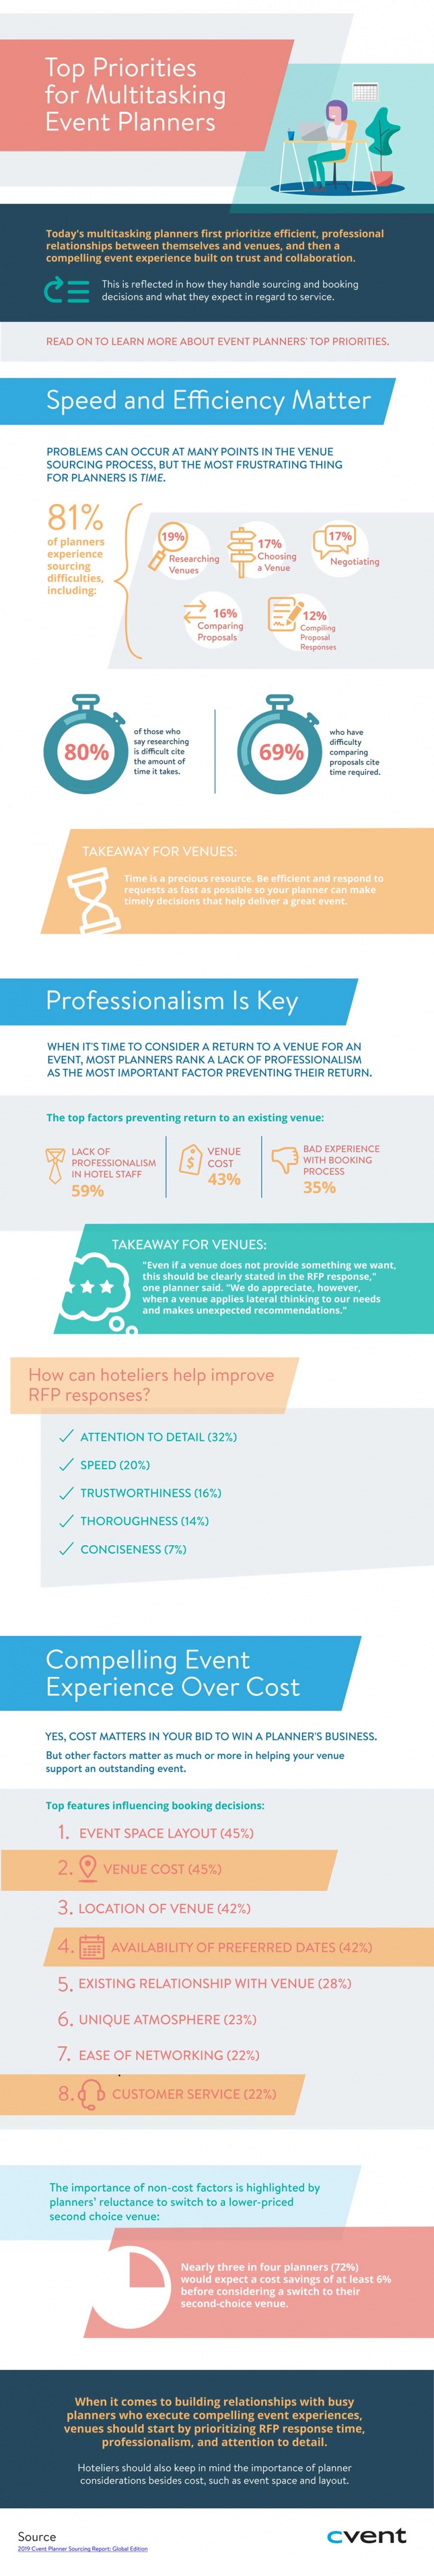 Top Priorities for Multitasking Event Planners Infographic